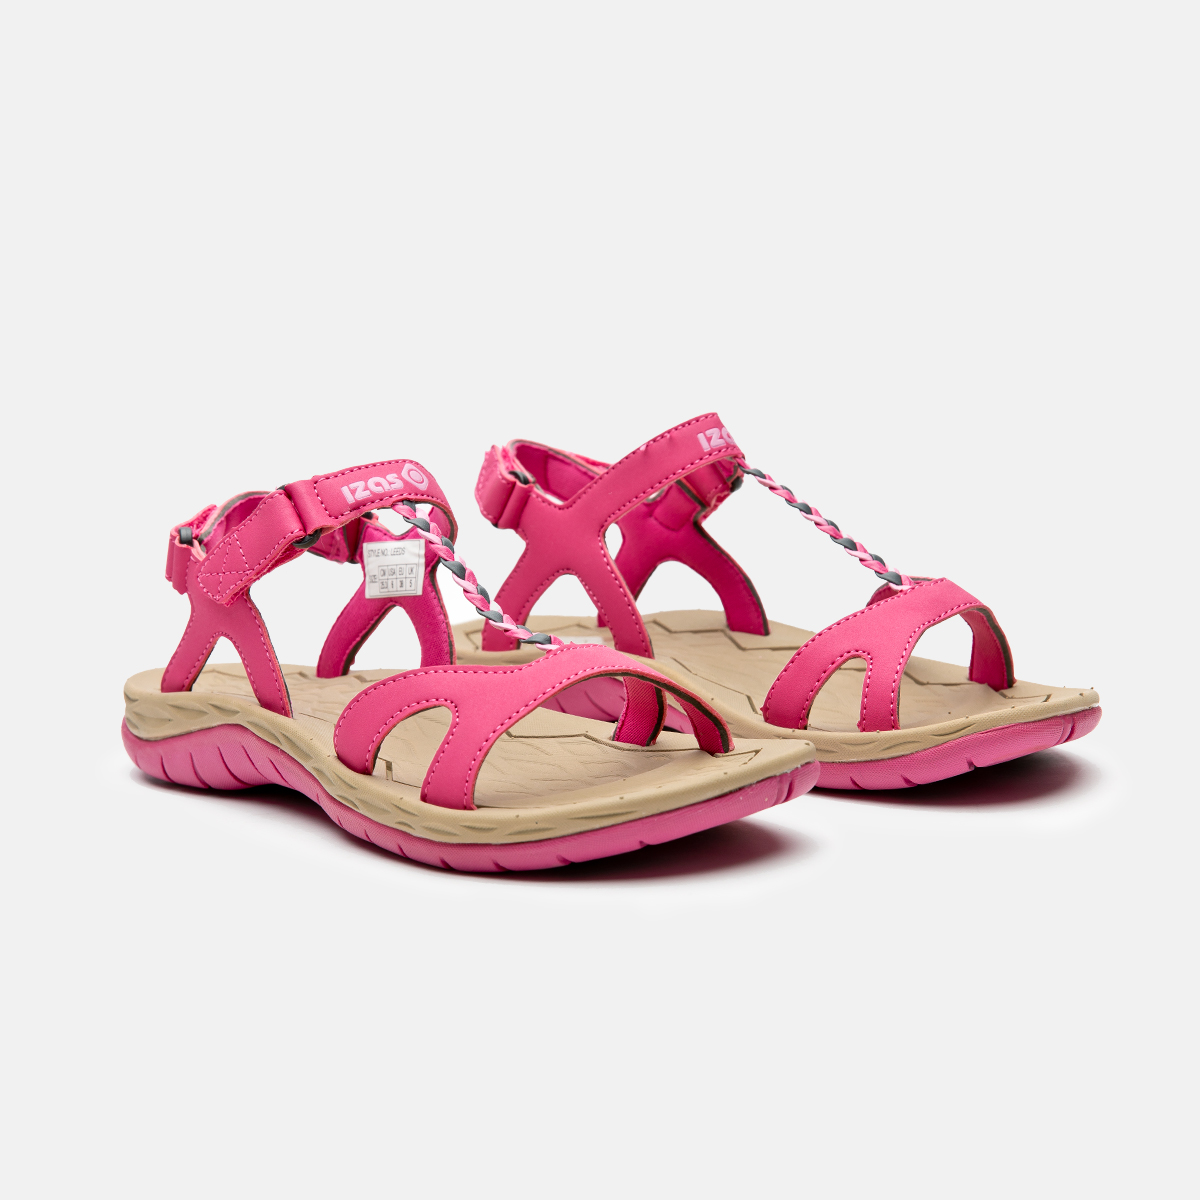 WOMAN'S LEEDS HIKING SANDALS FUXIA